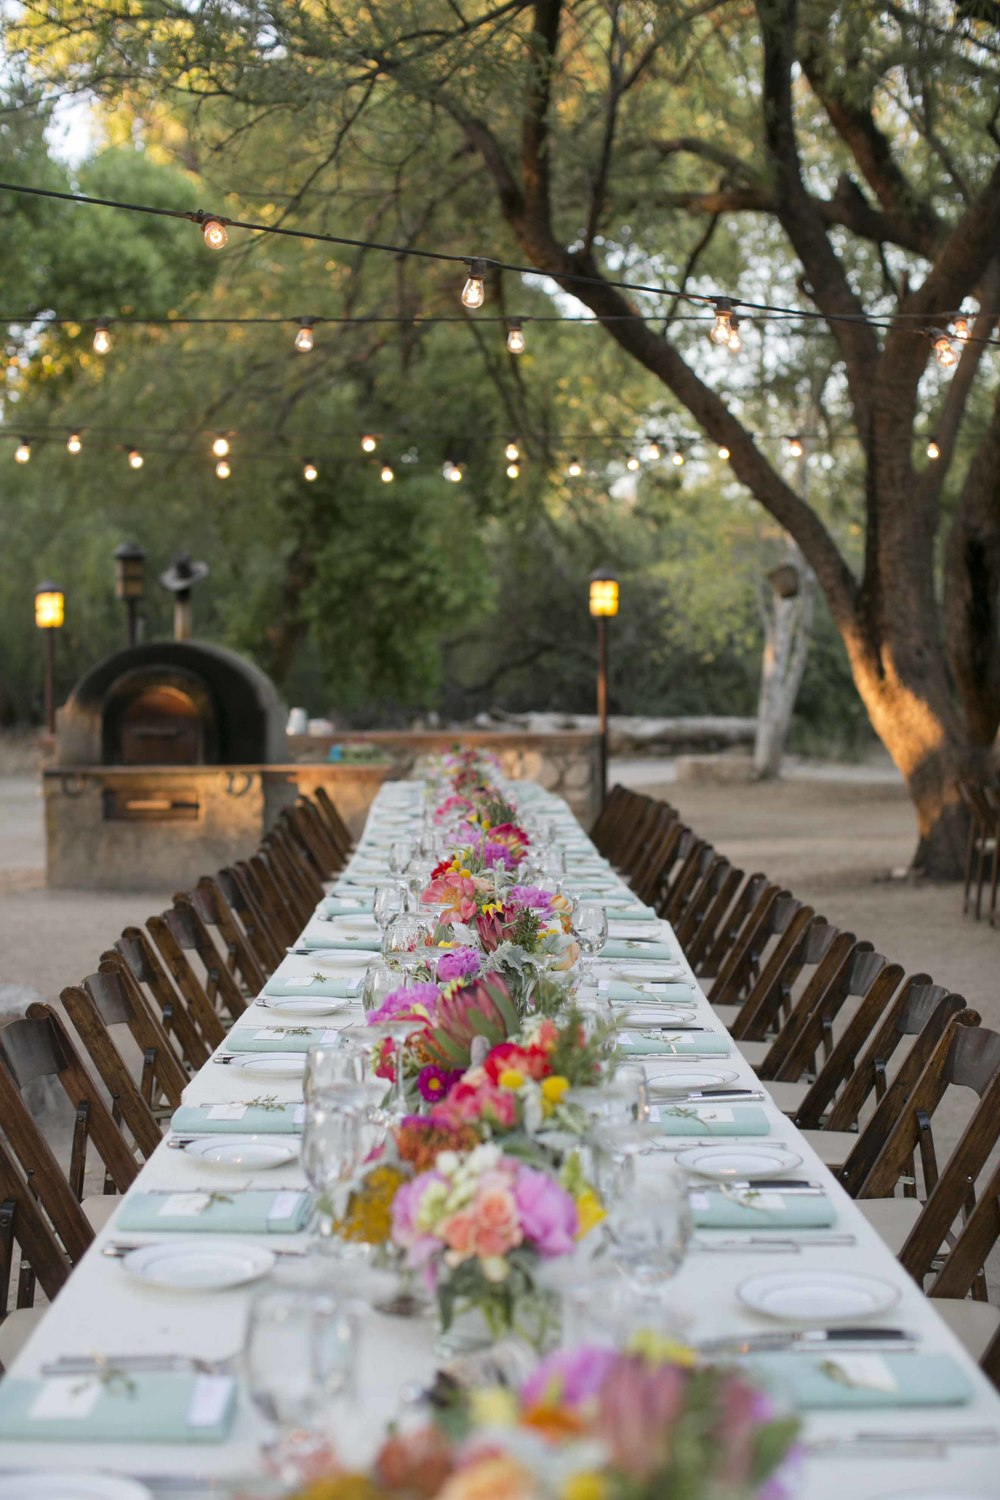 long-tables-wedding-desert-string-lights-peach-chic